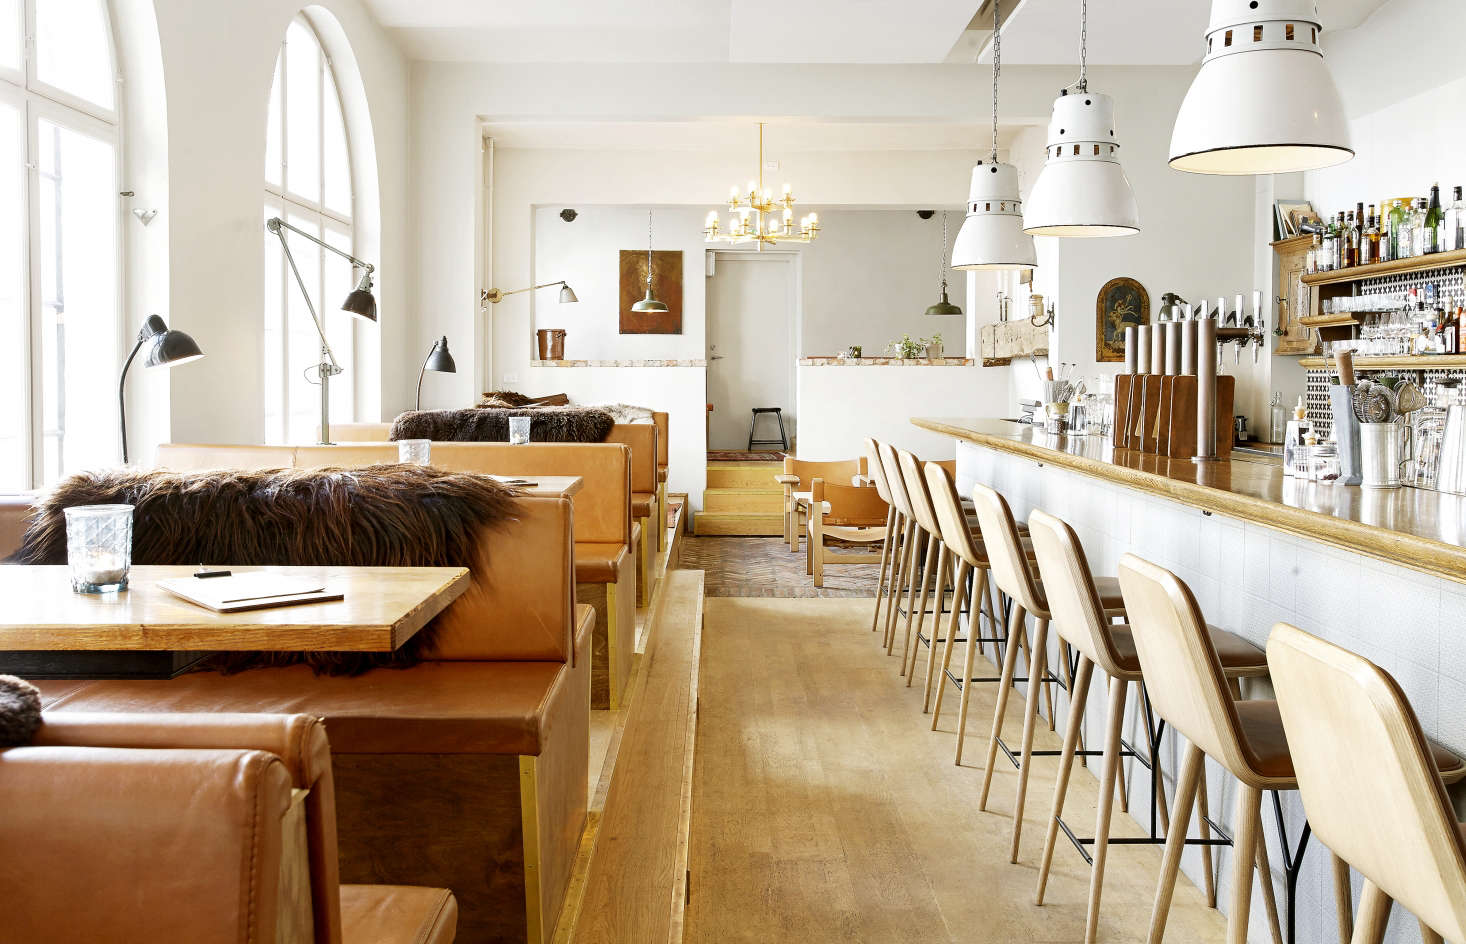 The ground floor has leather banquettes and Spine Barstools designed by Space CPH for Frederica. &#8